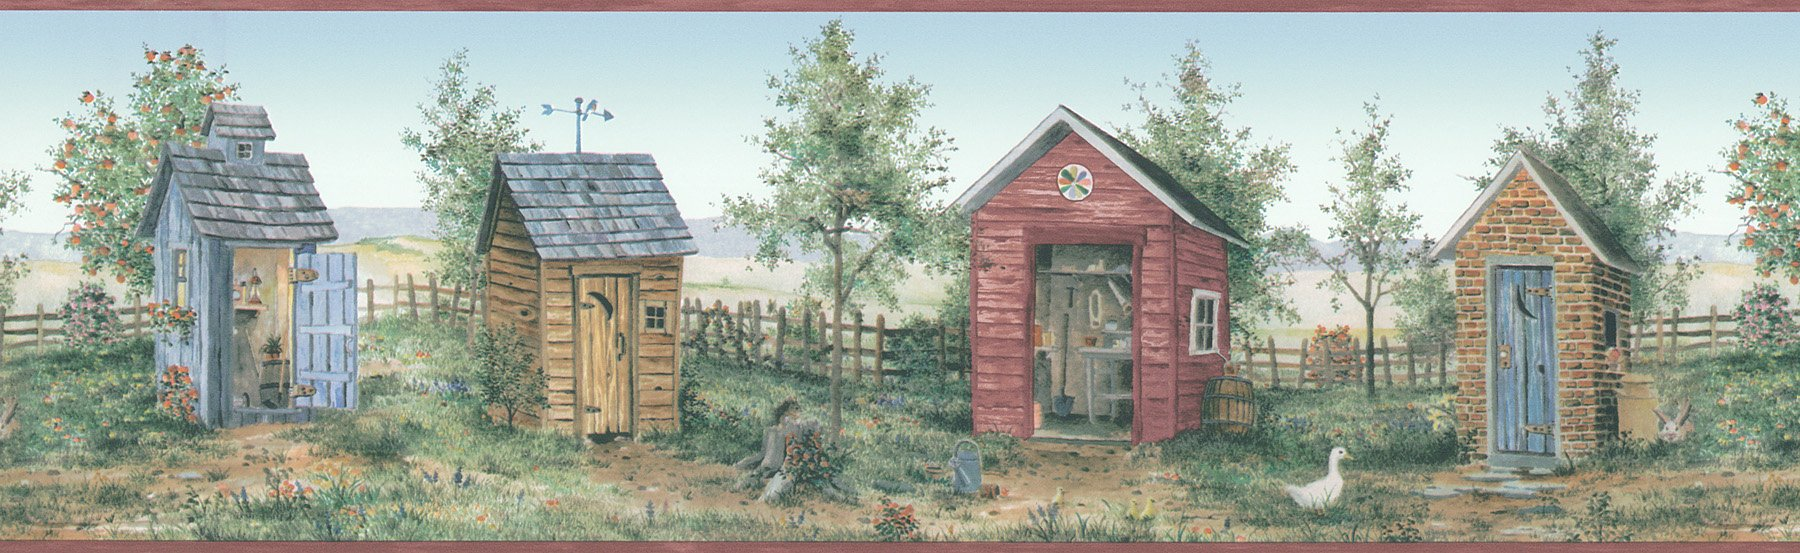 Brewster 418B056 For Your American Home Backyard Country Scenic Wall Border, 6.875-Inch by 180-Inch